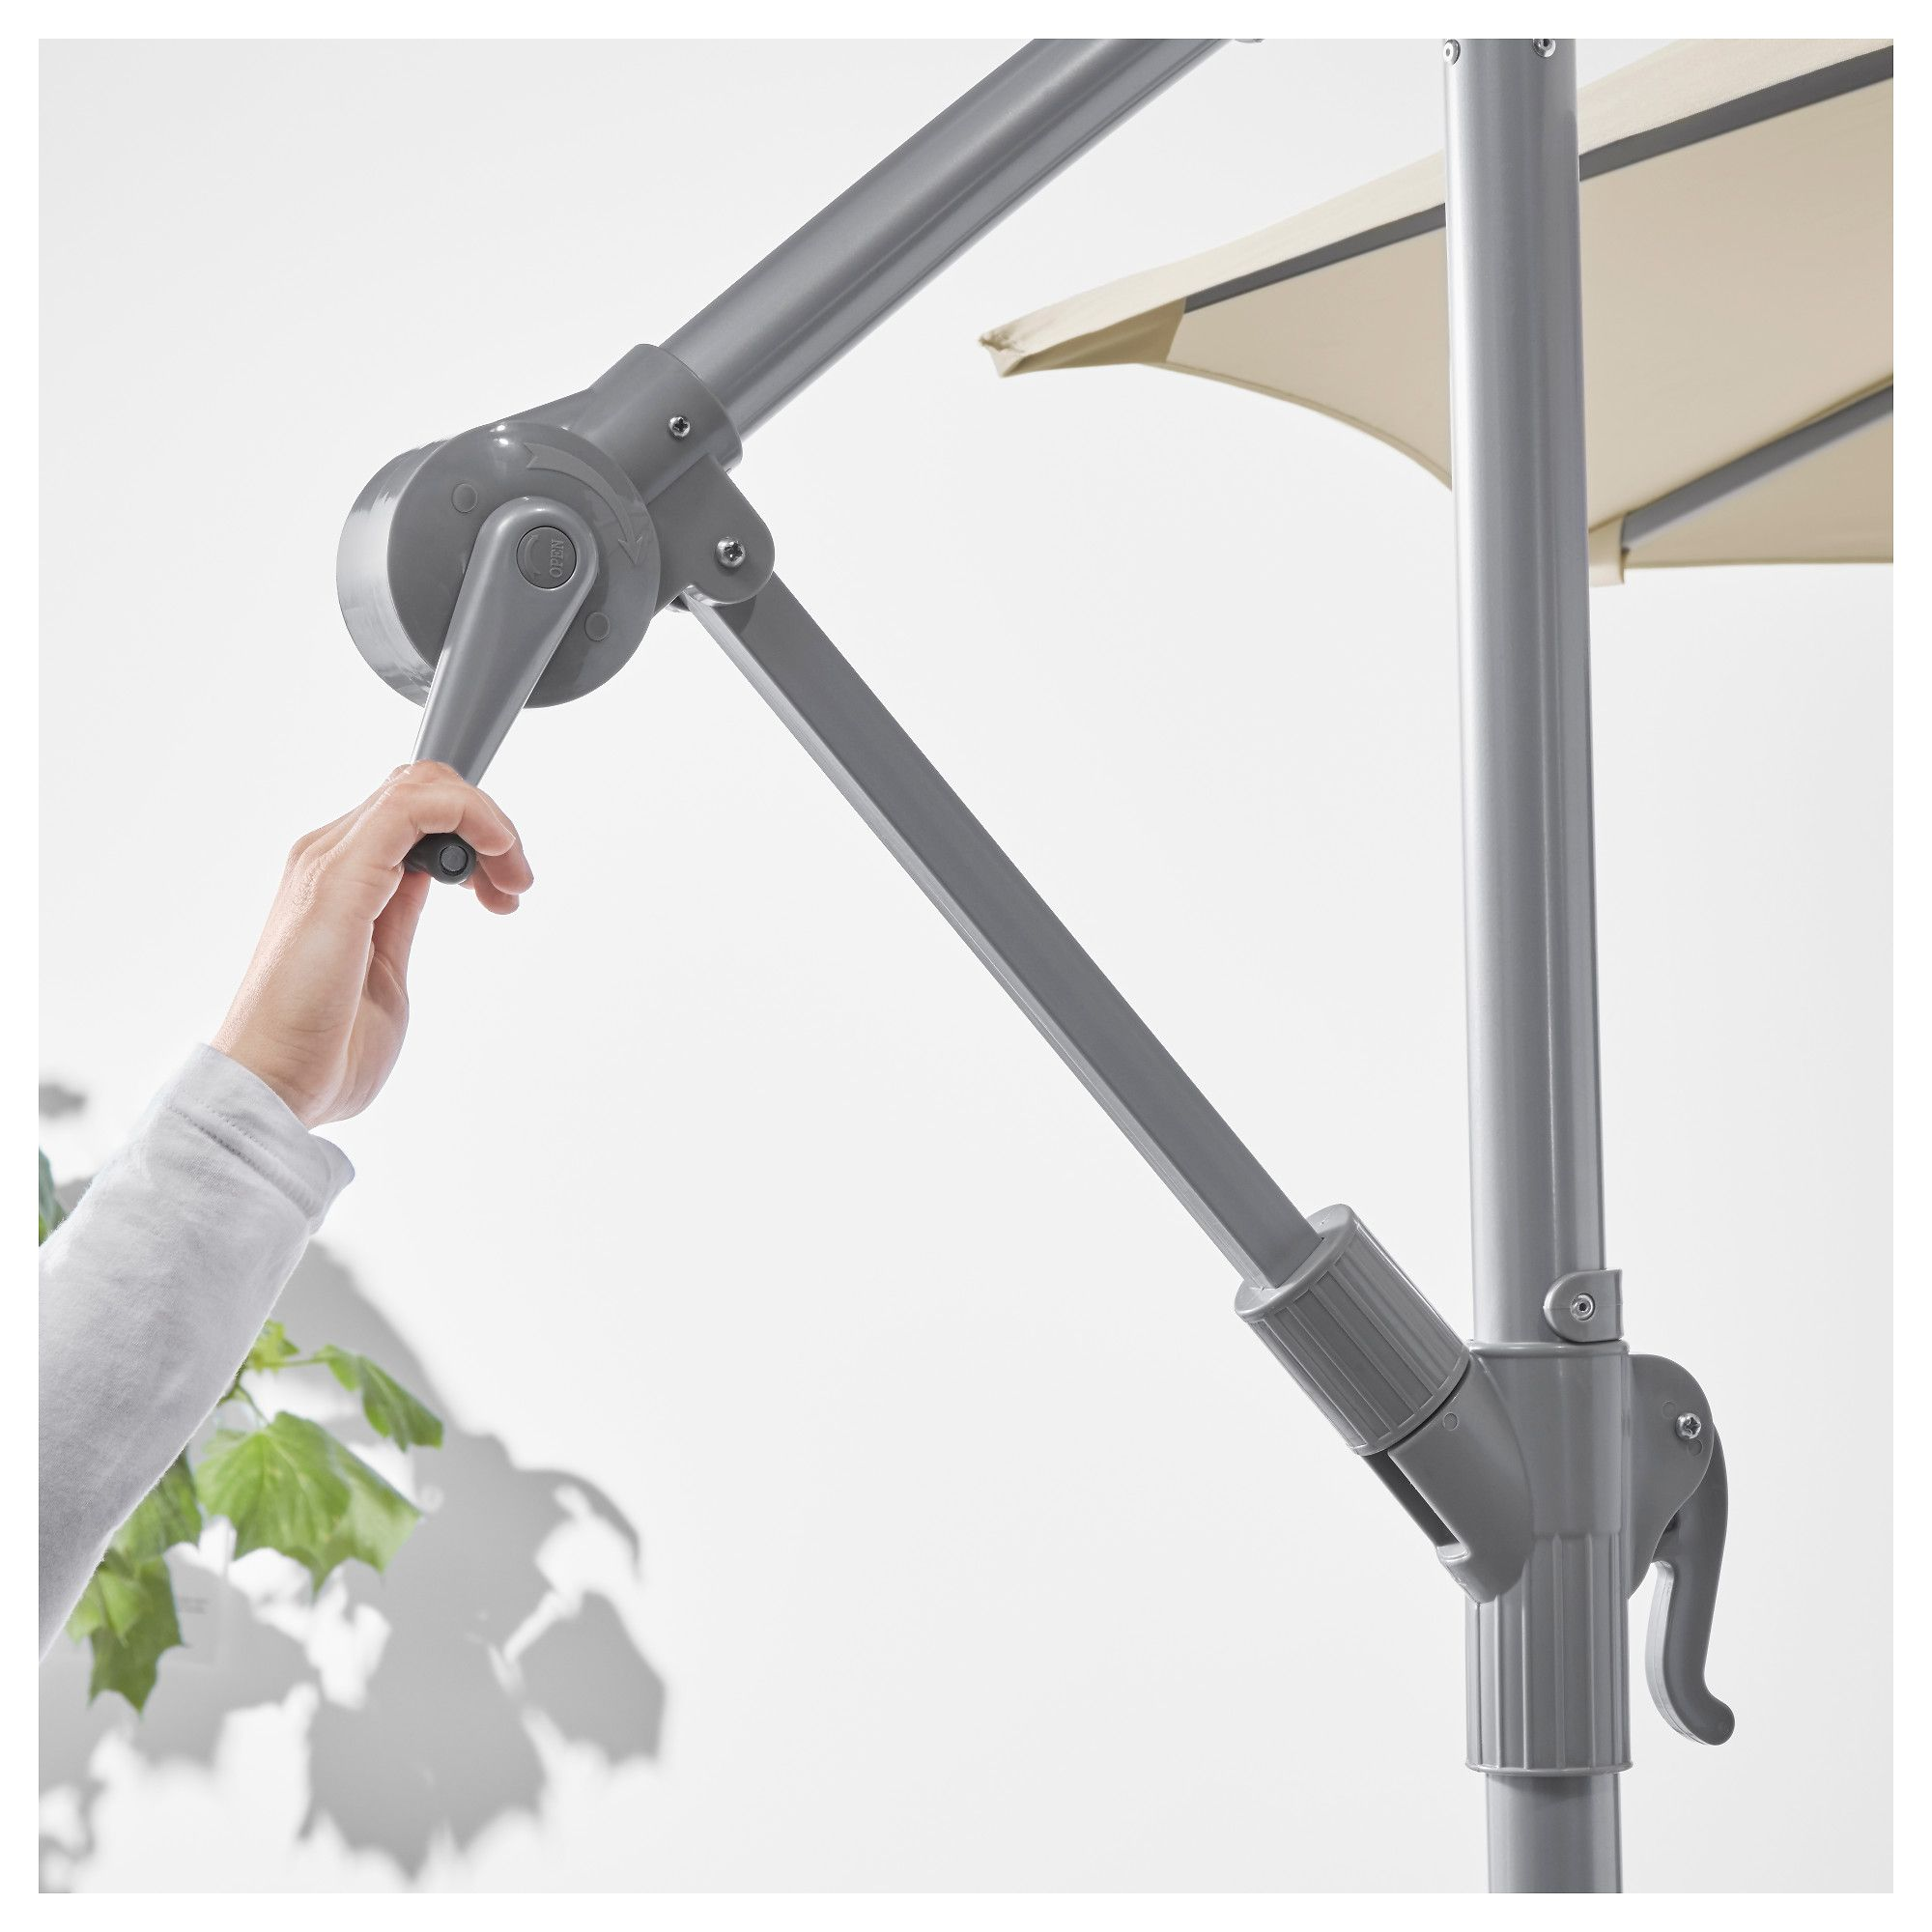 Ampelschirm Ikea Offset Patio Umbrella With Base KarlsÖ SvartÖ Beige Dark Gray